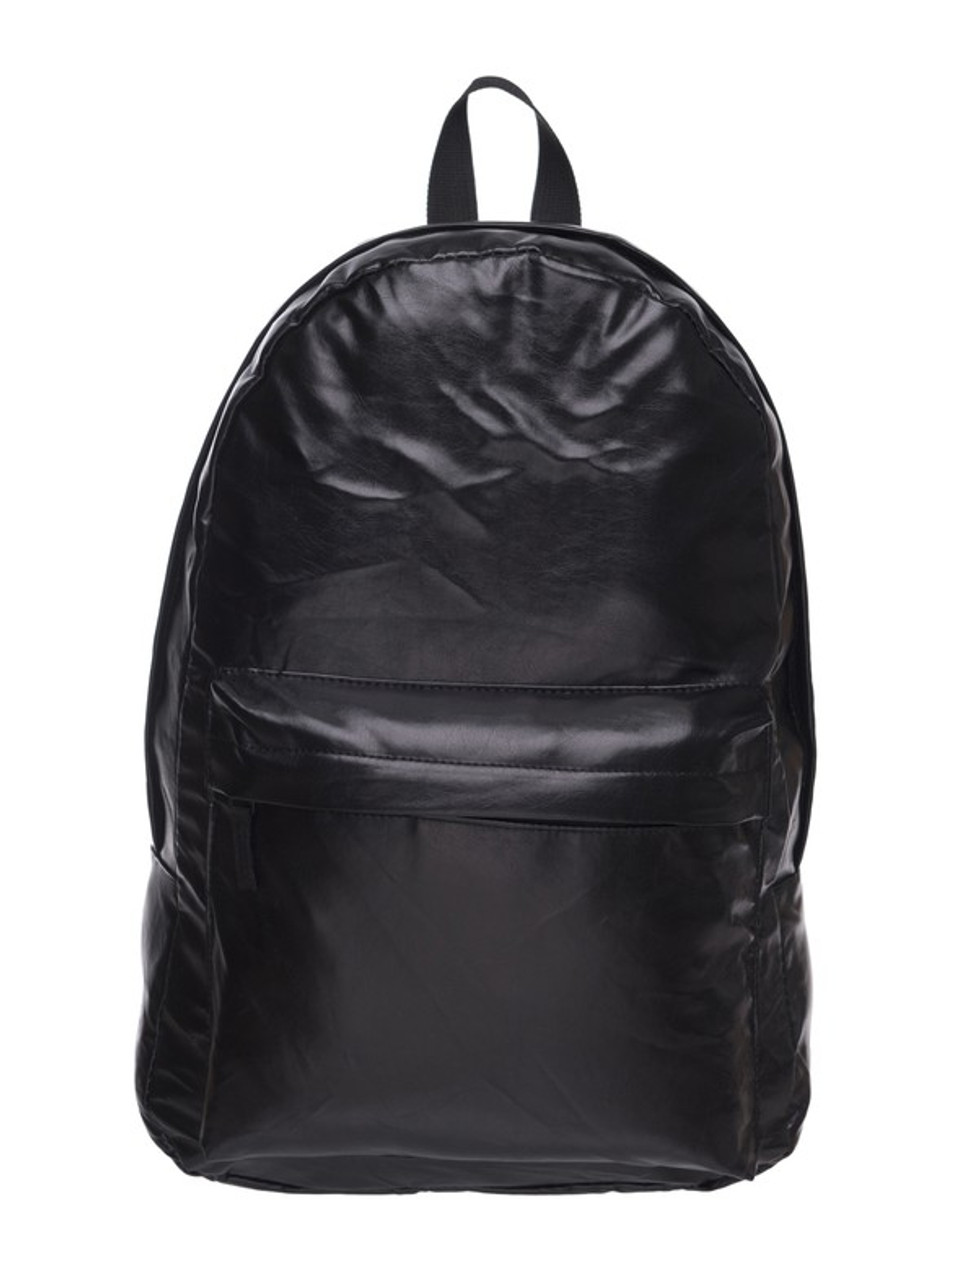 Front of Black Faux Leather Backpack with a large and small zipper compartment